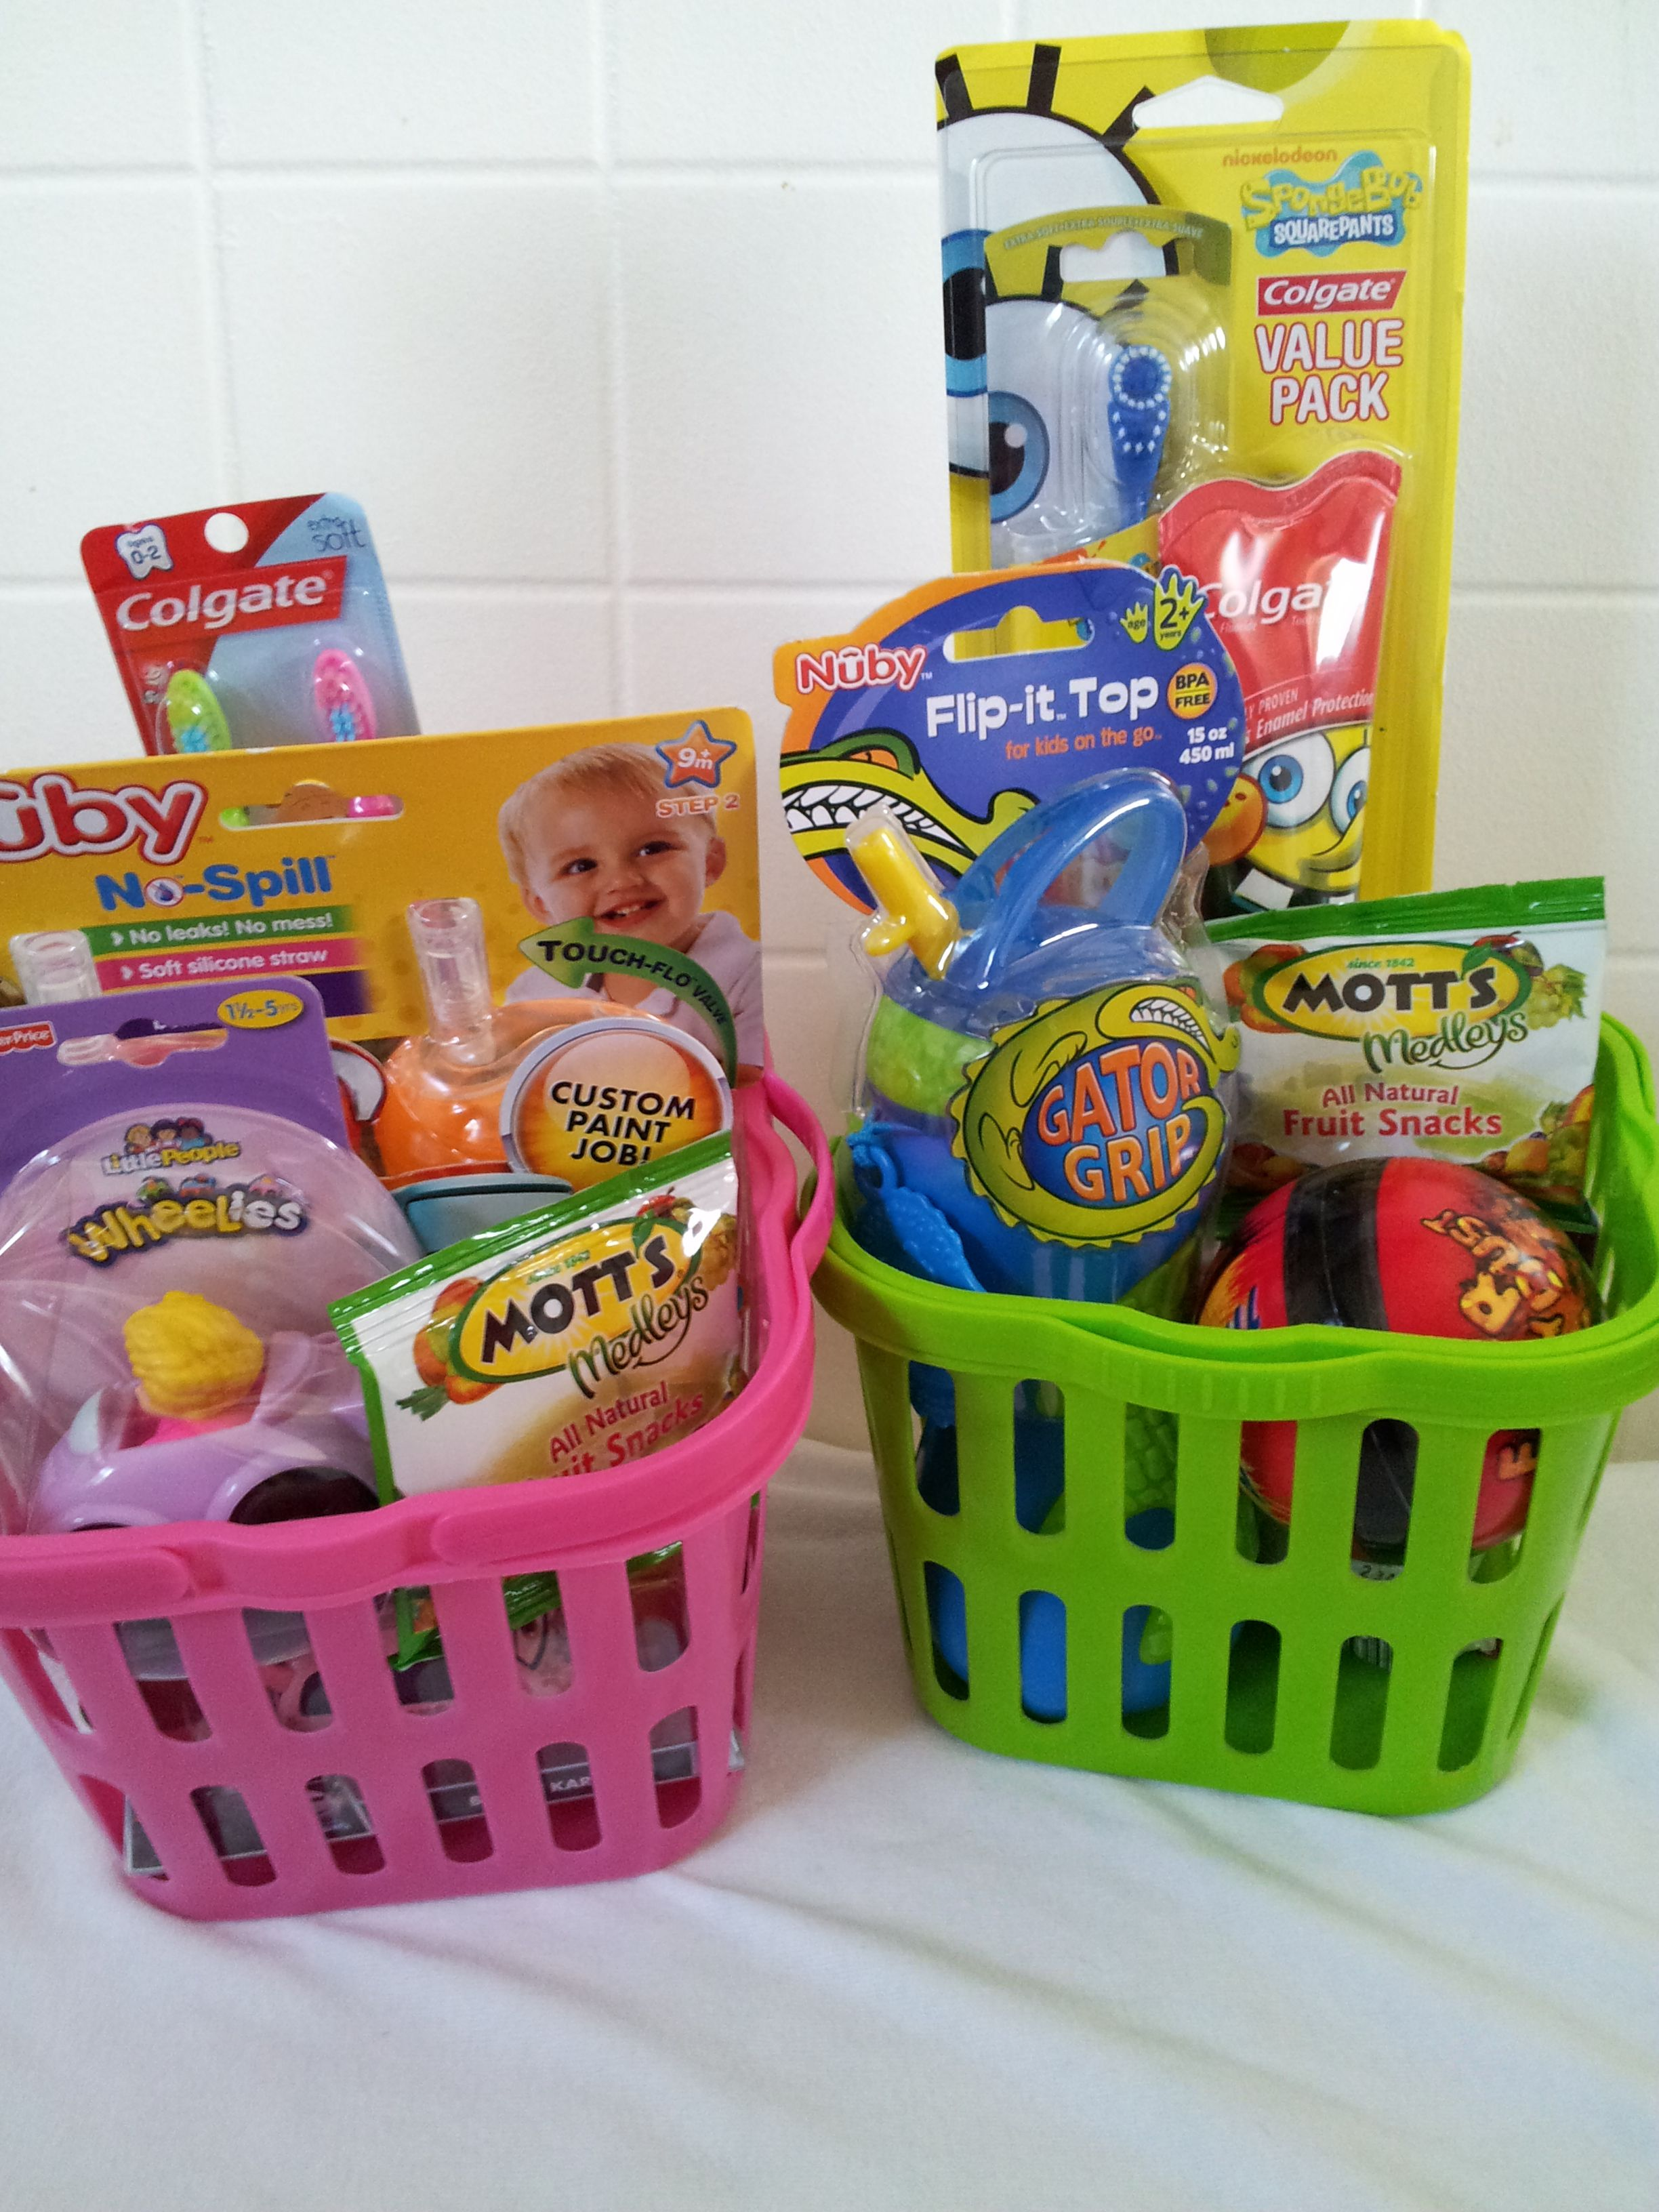 Sugarless and fun easter basket ideas for toddlers and babies easter basket ideas for toddlers and babies goodies to put in their baskets that are sugarless and fun negle Images